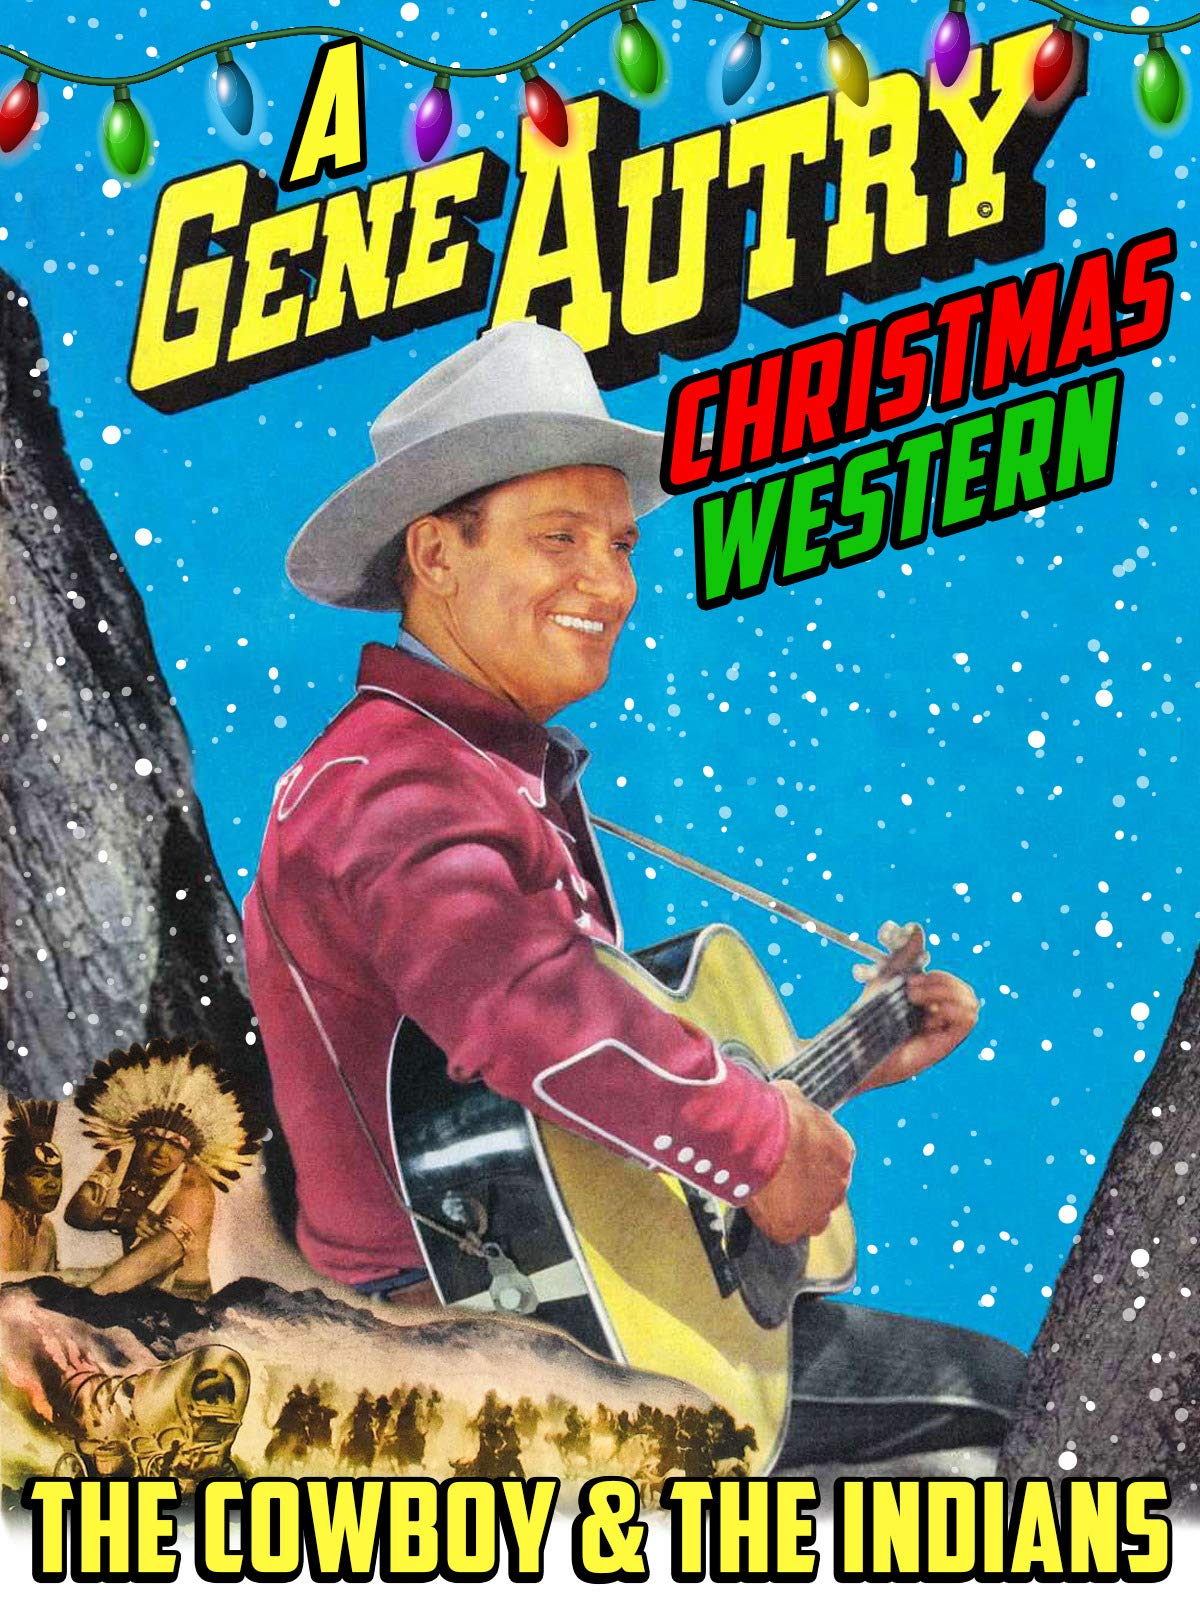 The Cowboy & The Indians - A Gene Autry Christmas Western on Amazon Prime Video UK